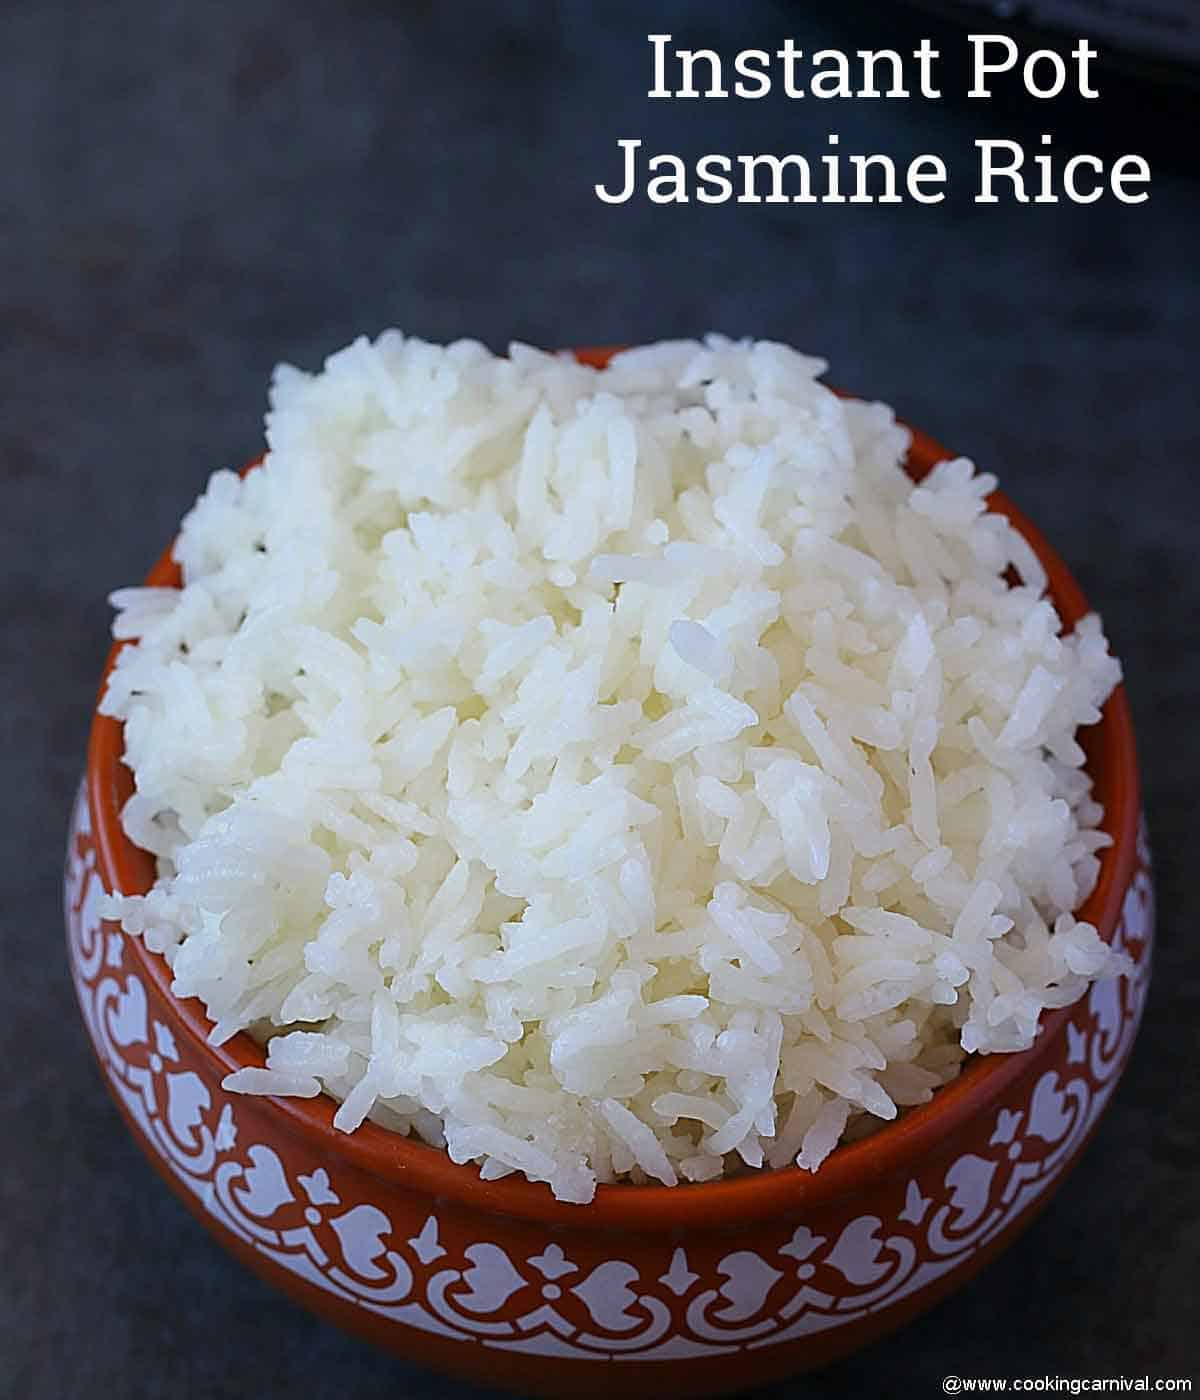 cooked Jasmine rice in a traditional bowl